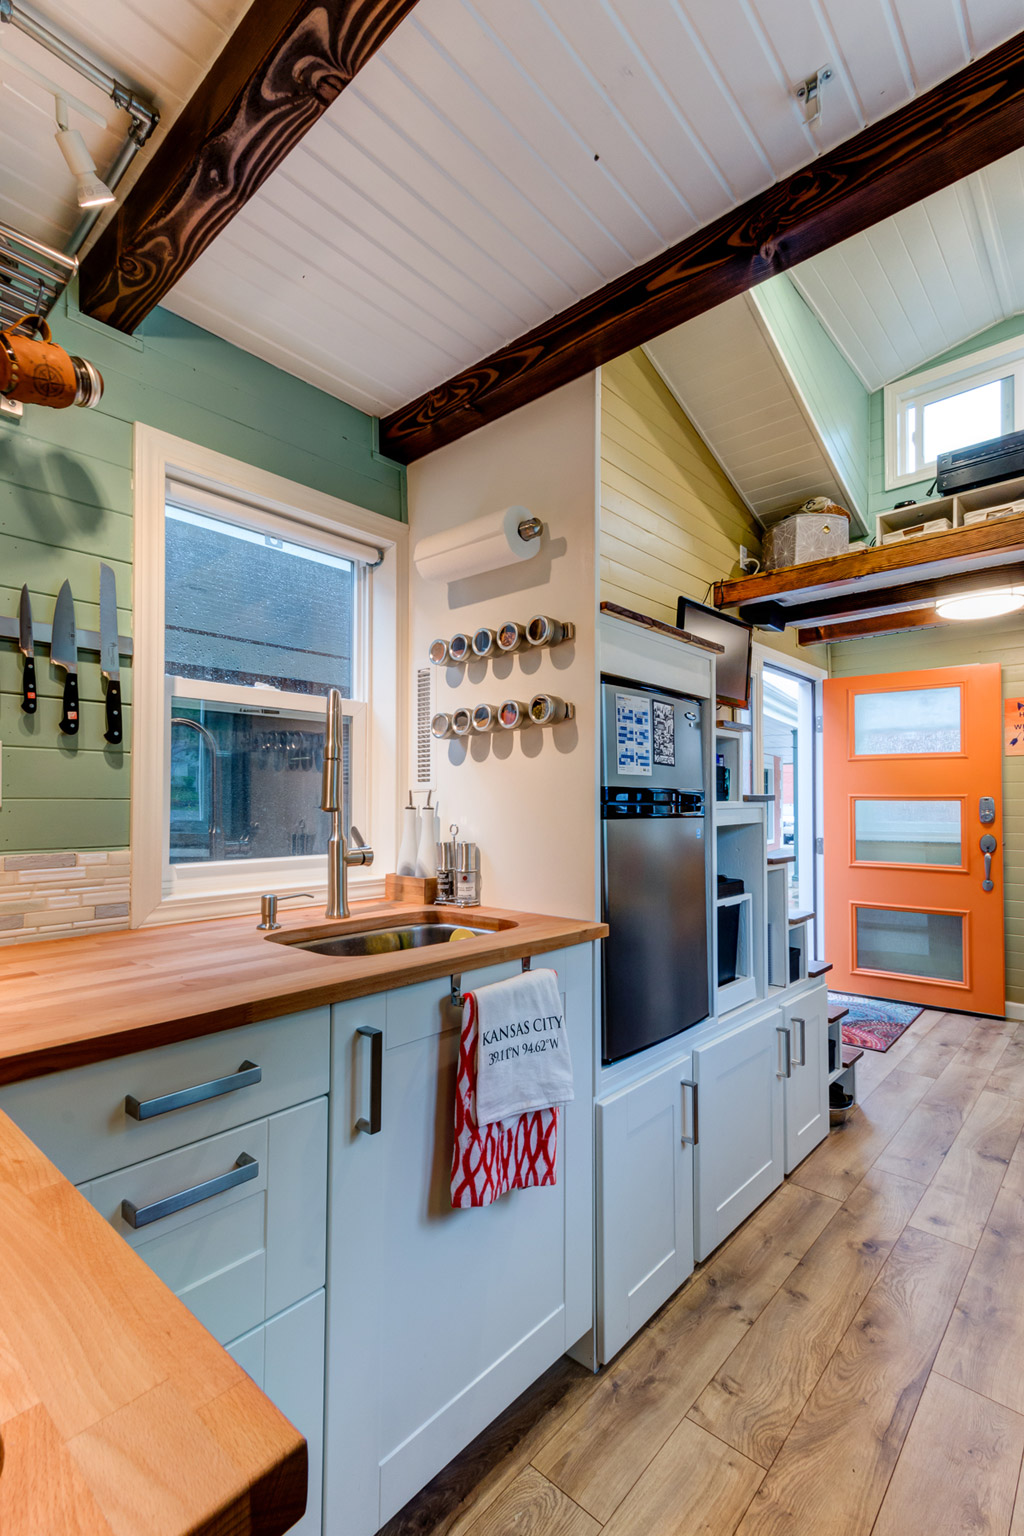 8 Staycation Worthy Tiny Homes For Sale: TINY HOUSE TOWN: The Wanderlust Tiny House (170 Sq Ft